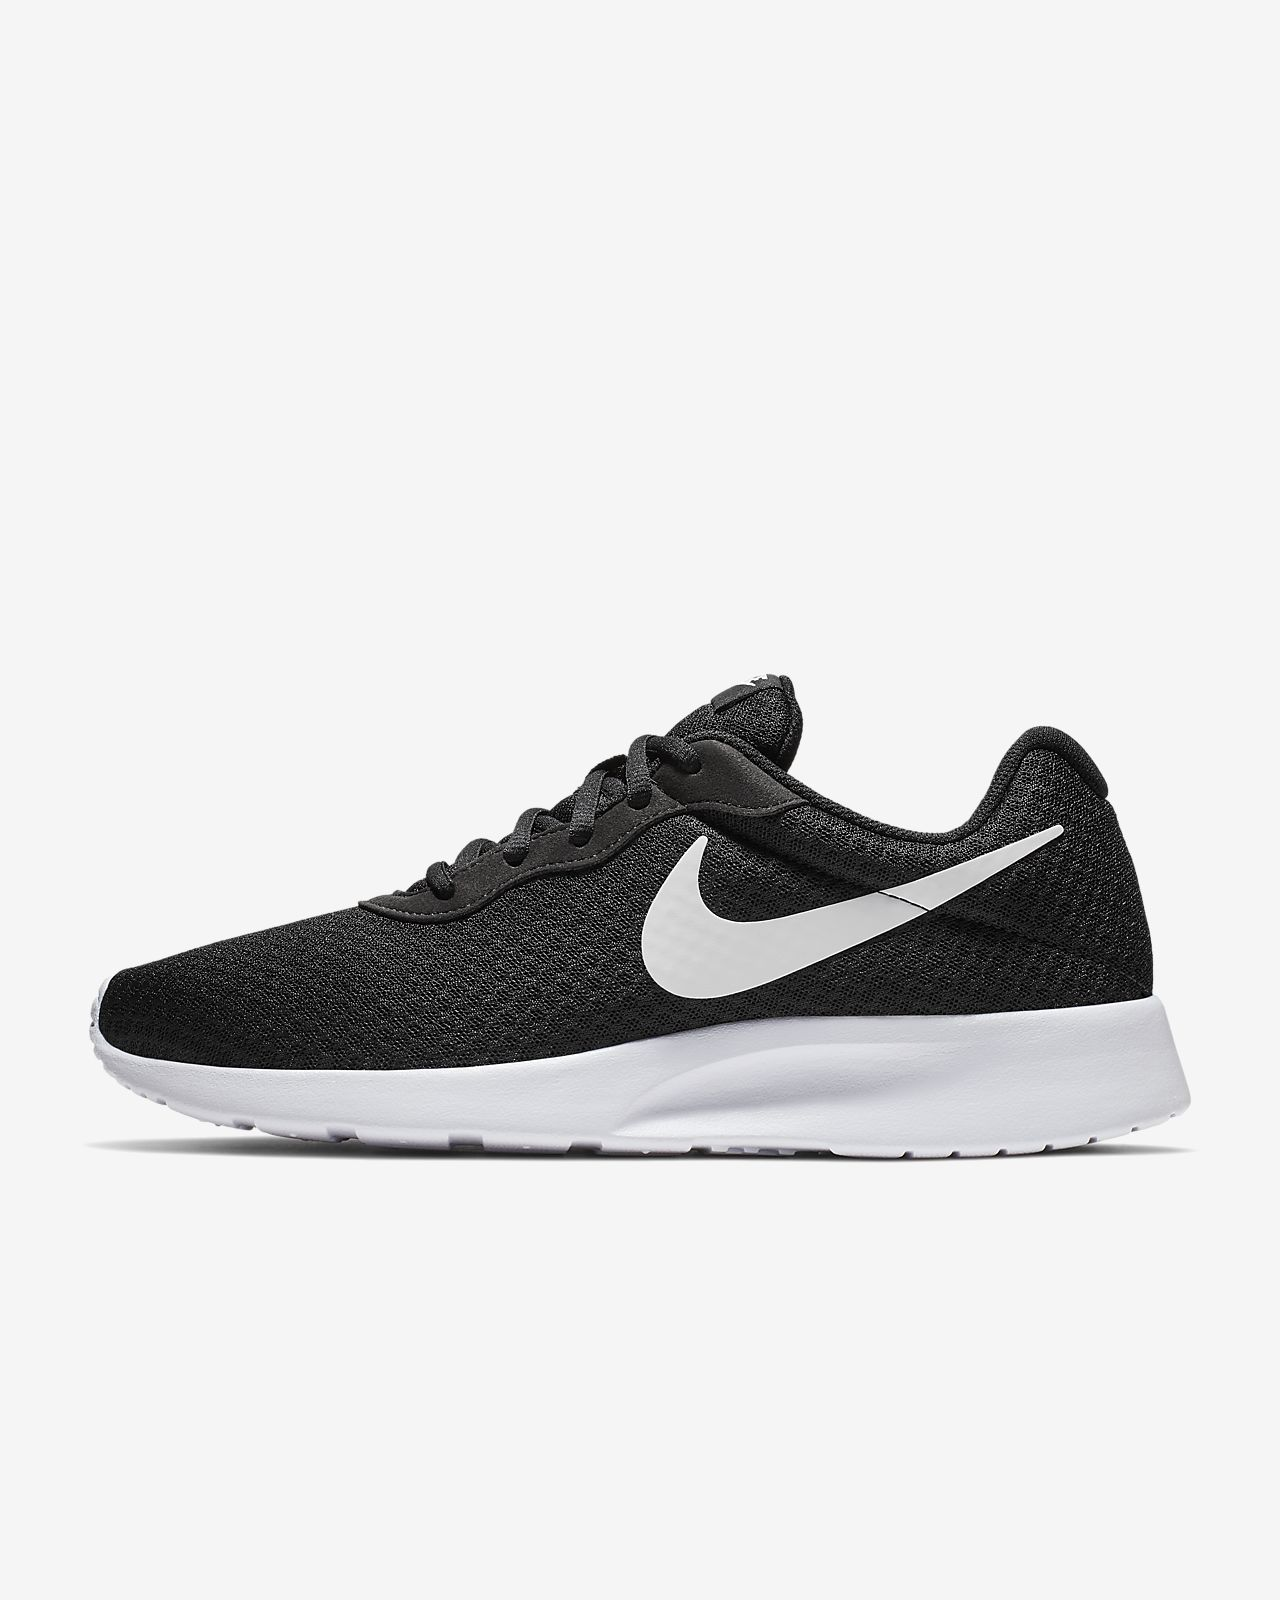 low priced de55e a9333 Low Resolution Nike Tanjun Men s Shoe Nike Tanjun Men s Shoe